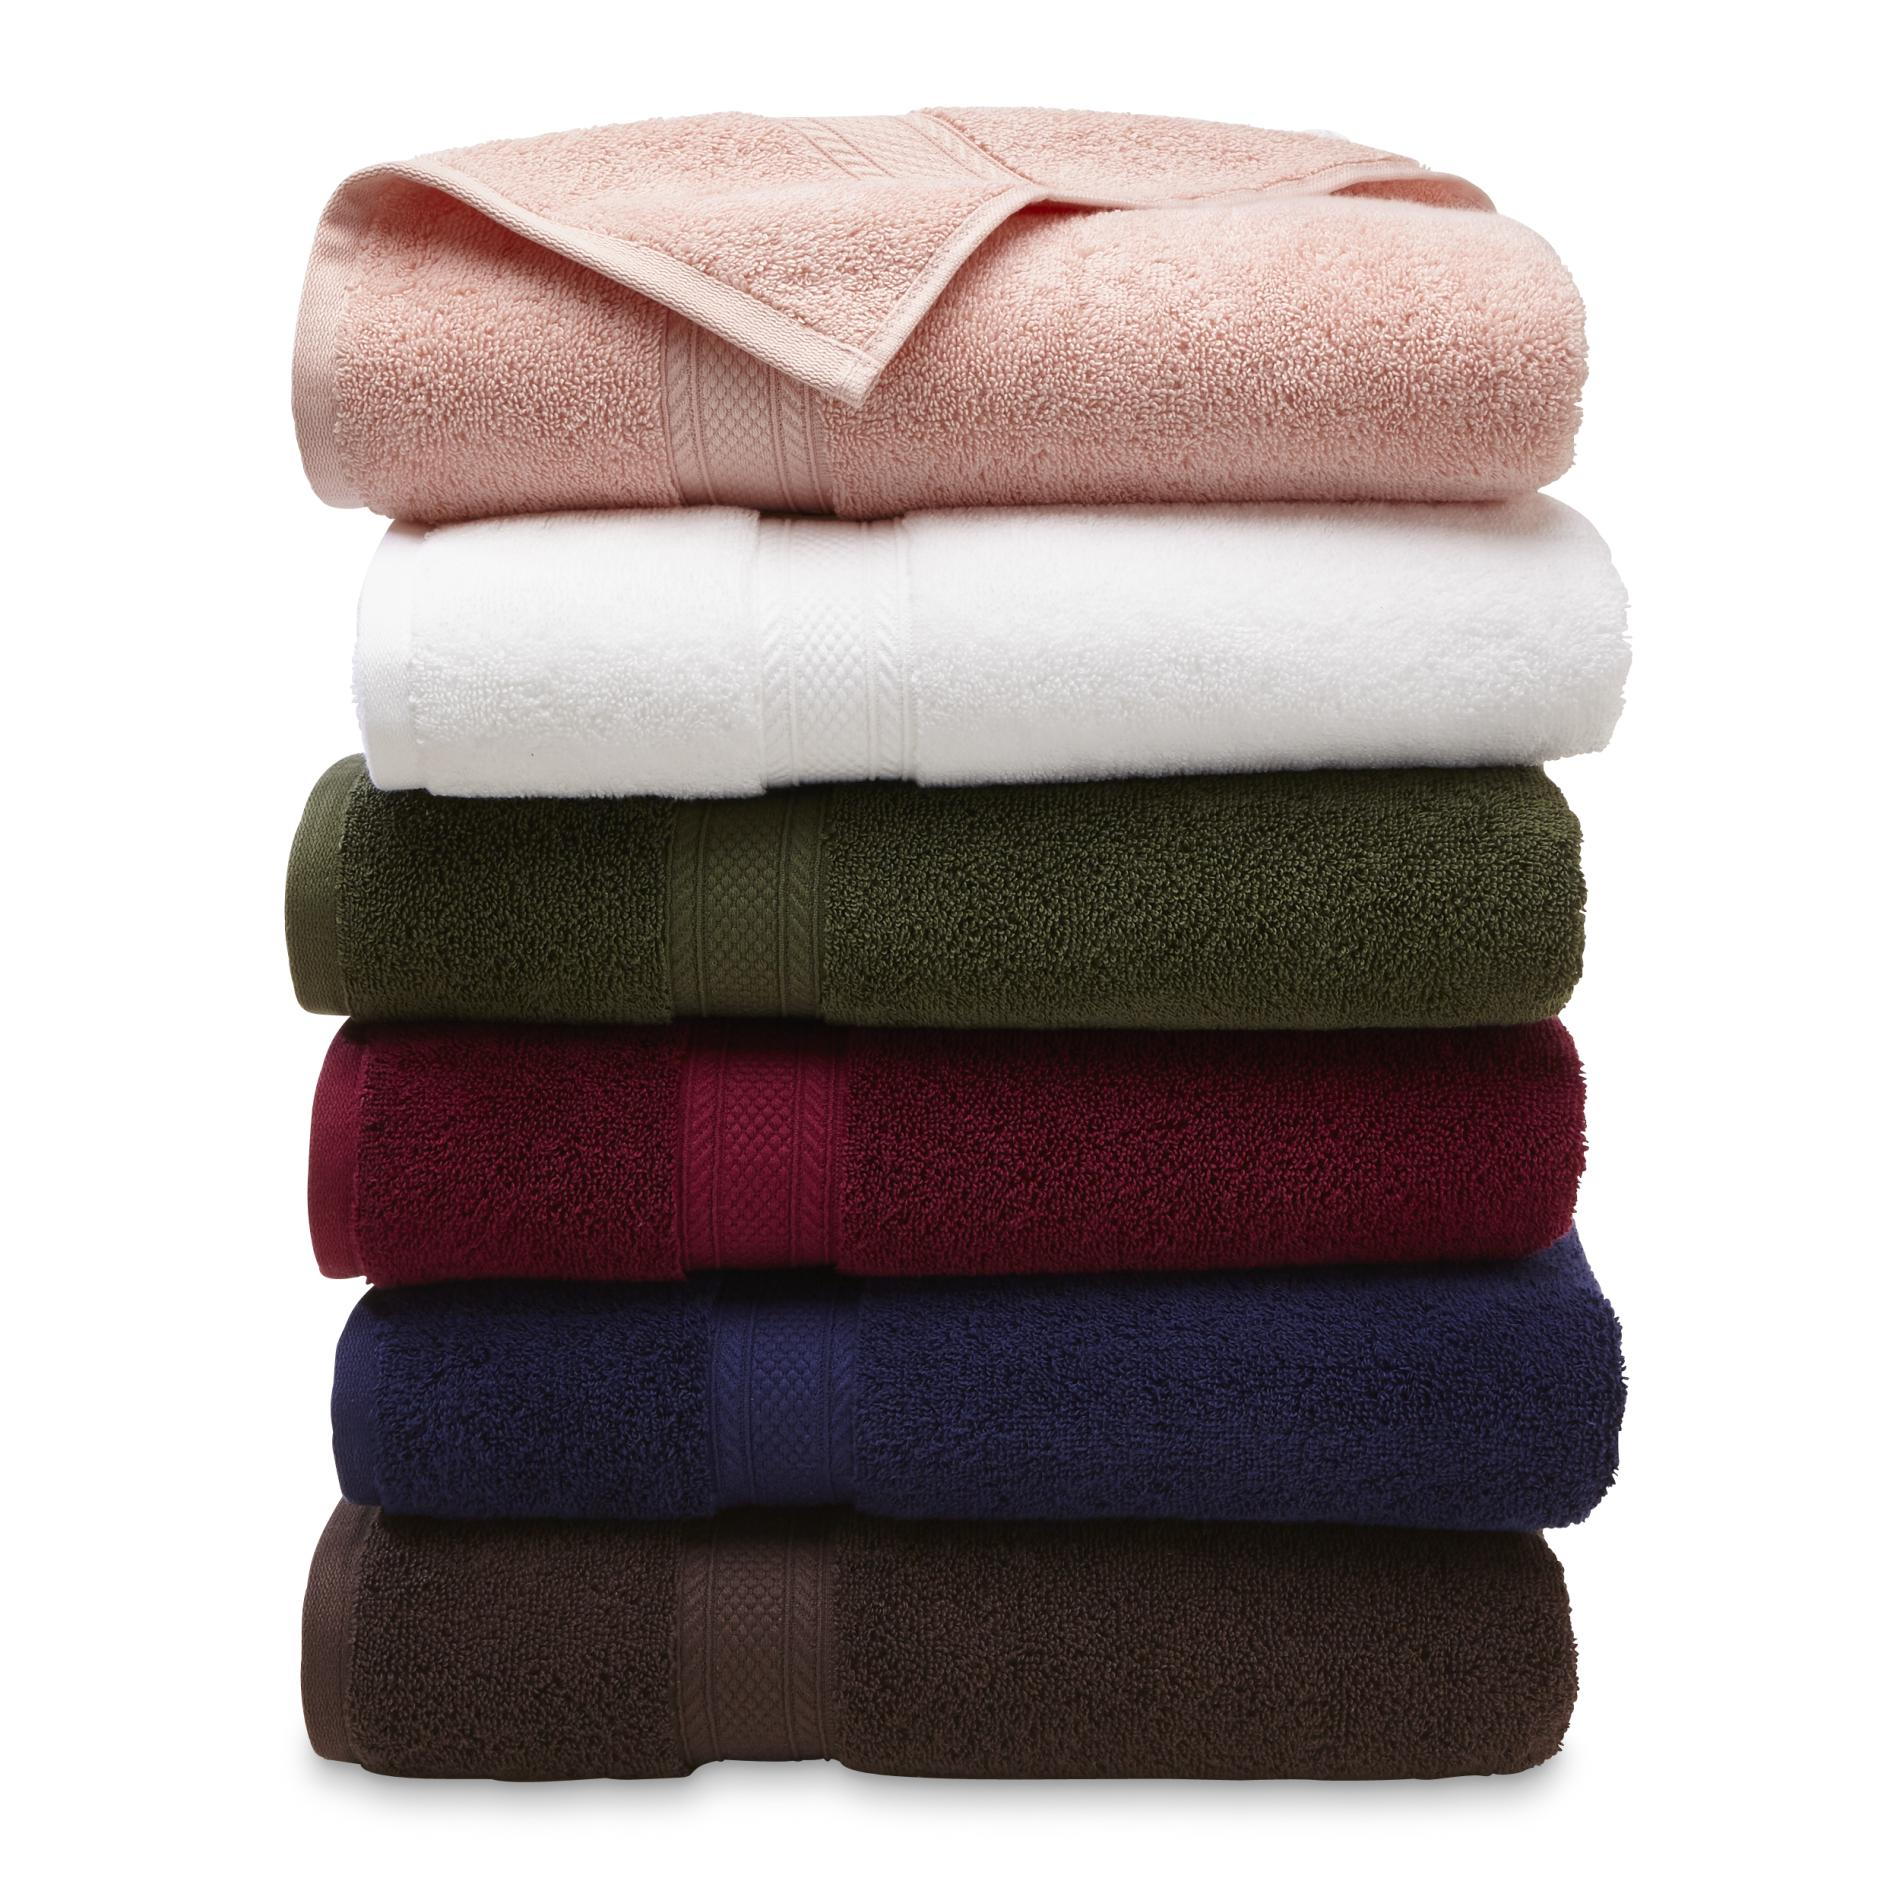 Cannon Hygrocotton Perfect Bath Towel, Hand Towel Or Washcloth